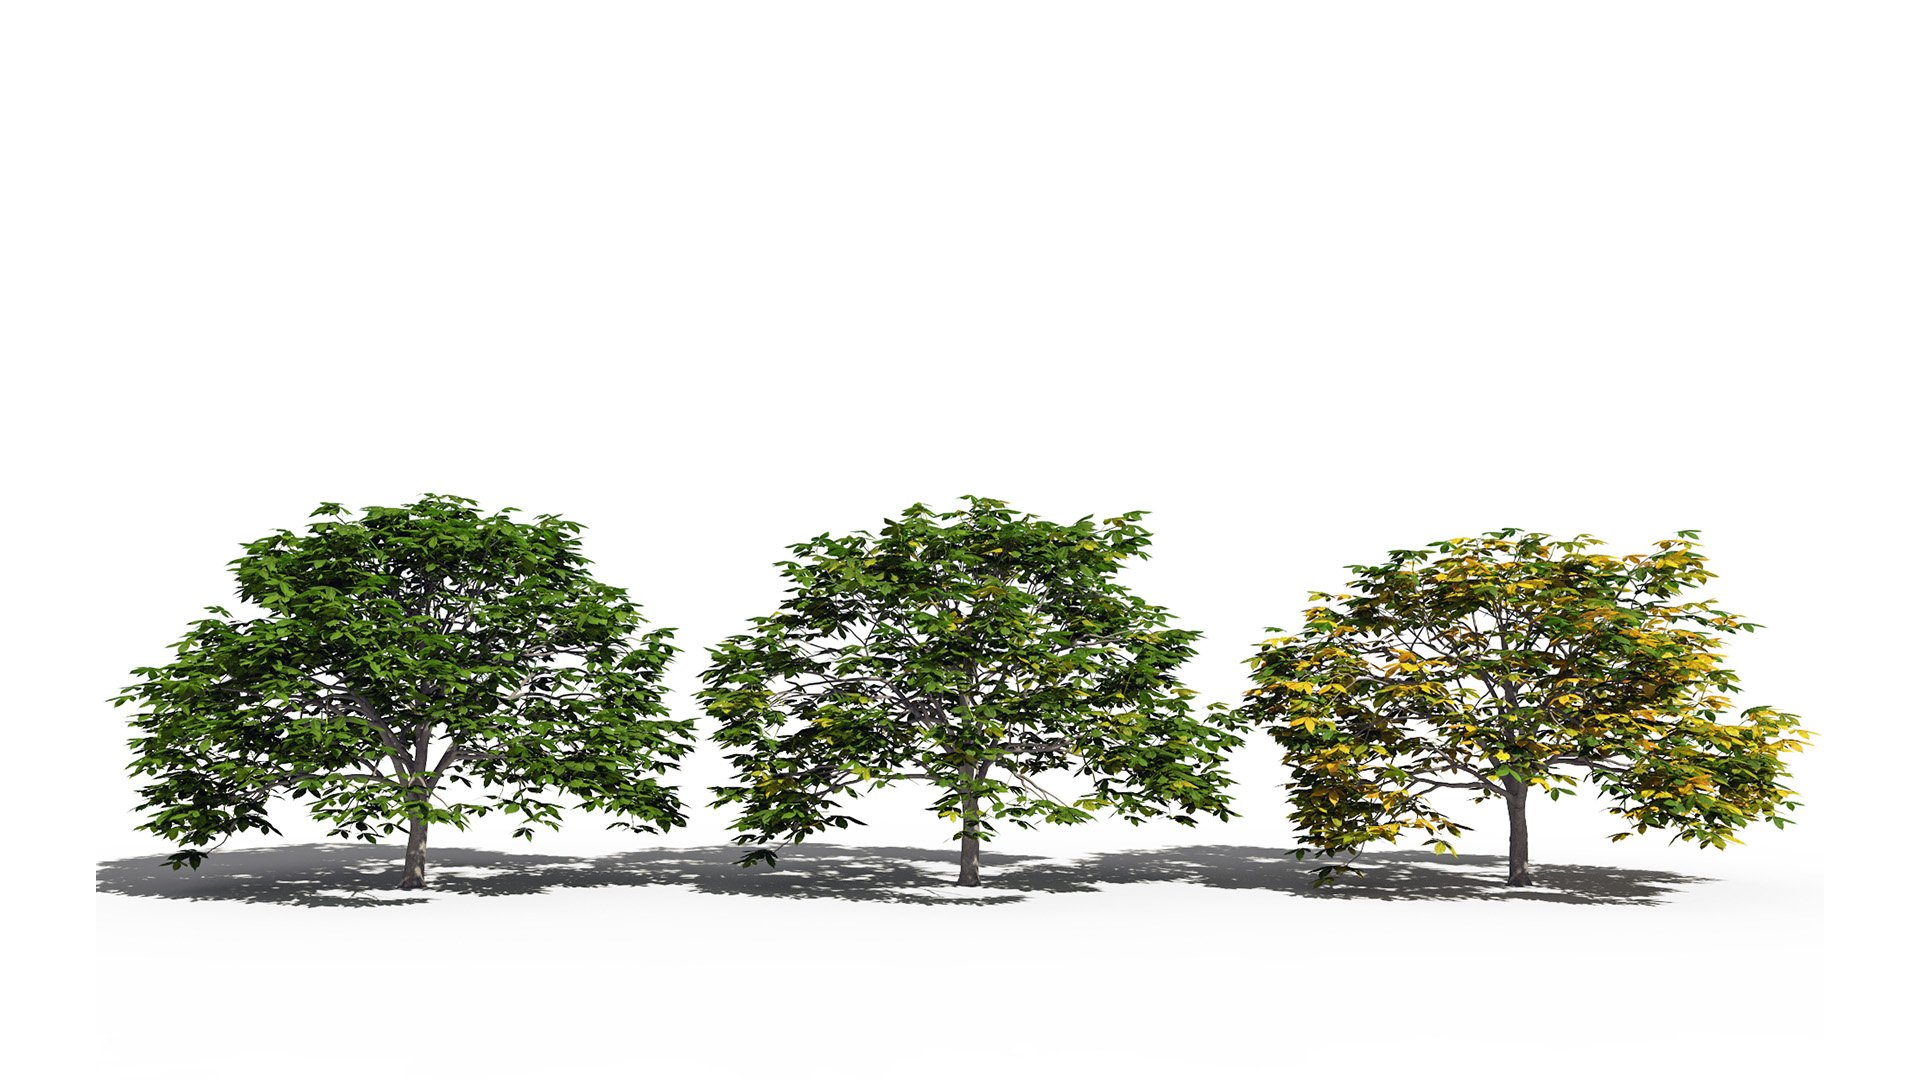 3D model of the Dwarf red horse chestnut Aesculus pavia health variations